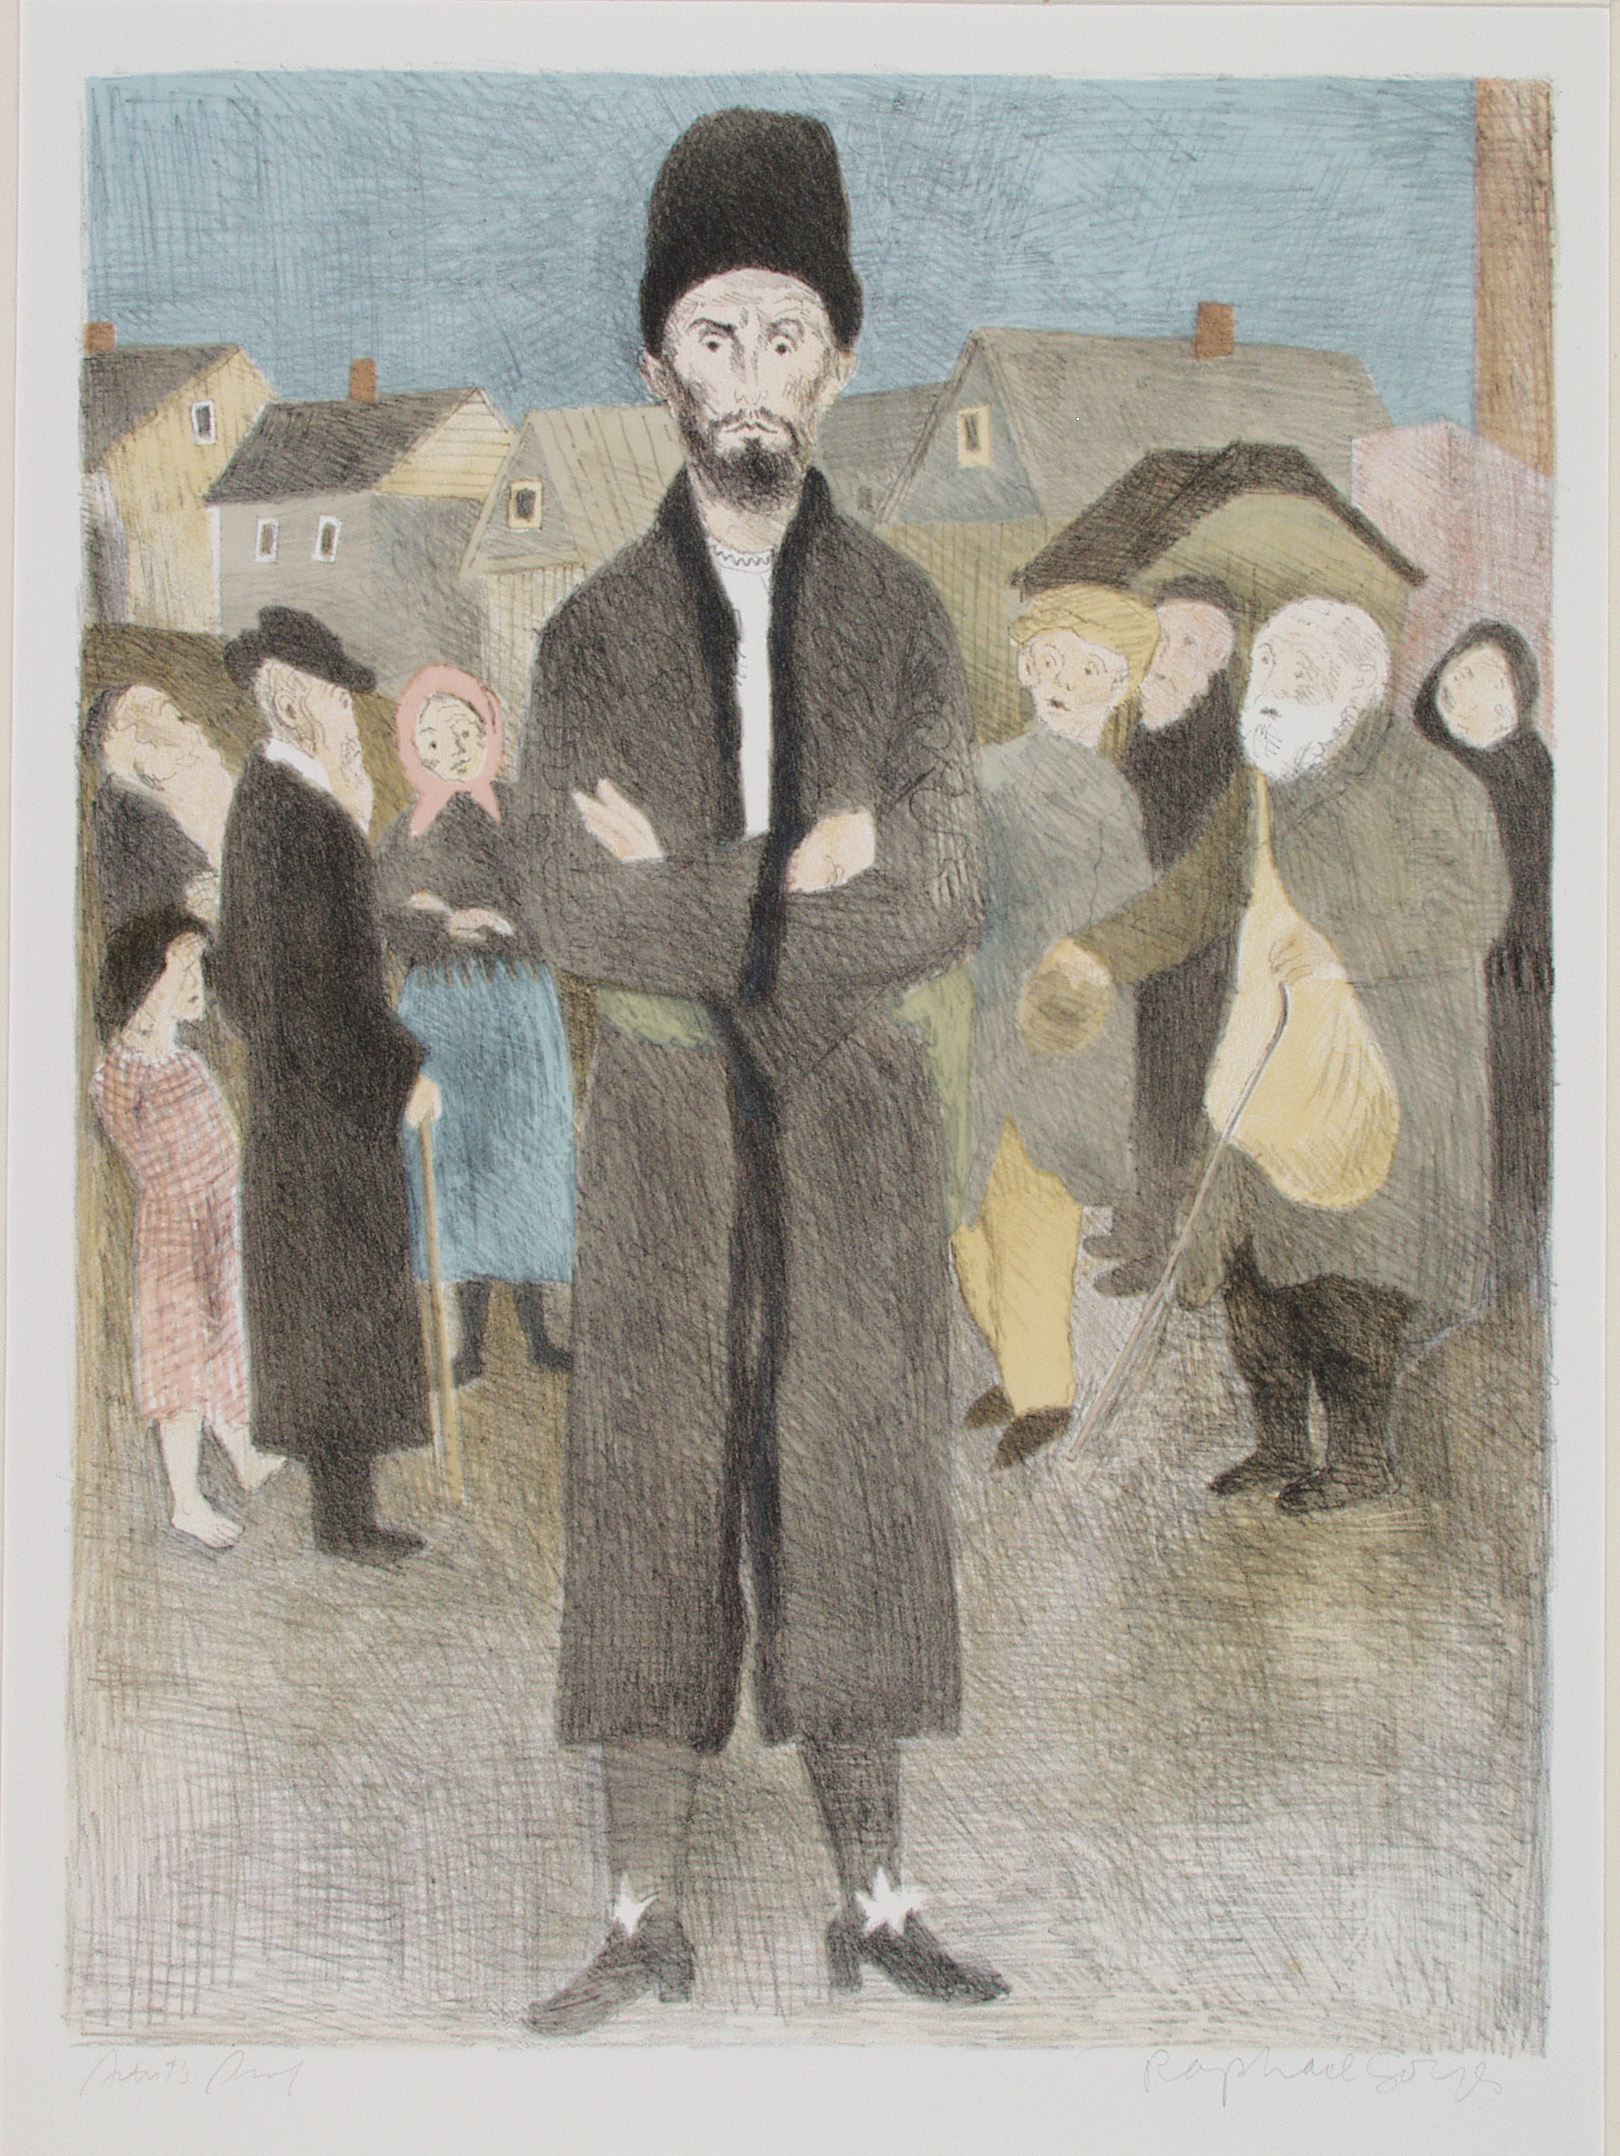 """Dreams"" Gentelman From Krakow"" Raphael Soyer Opens in new window"